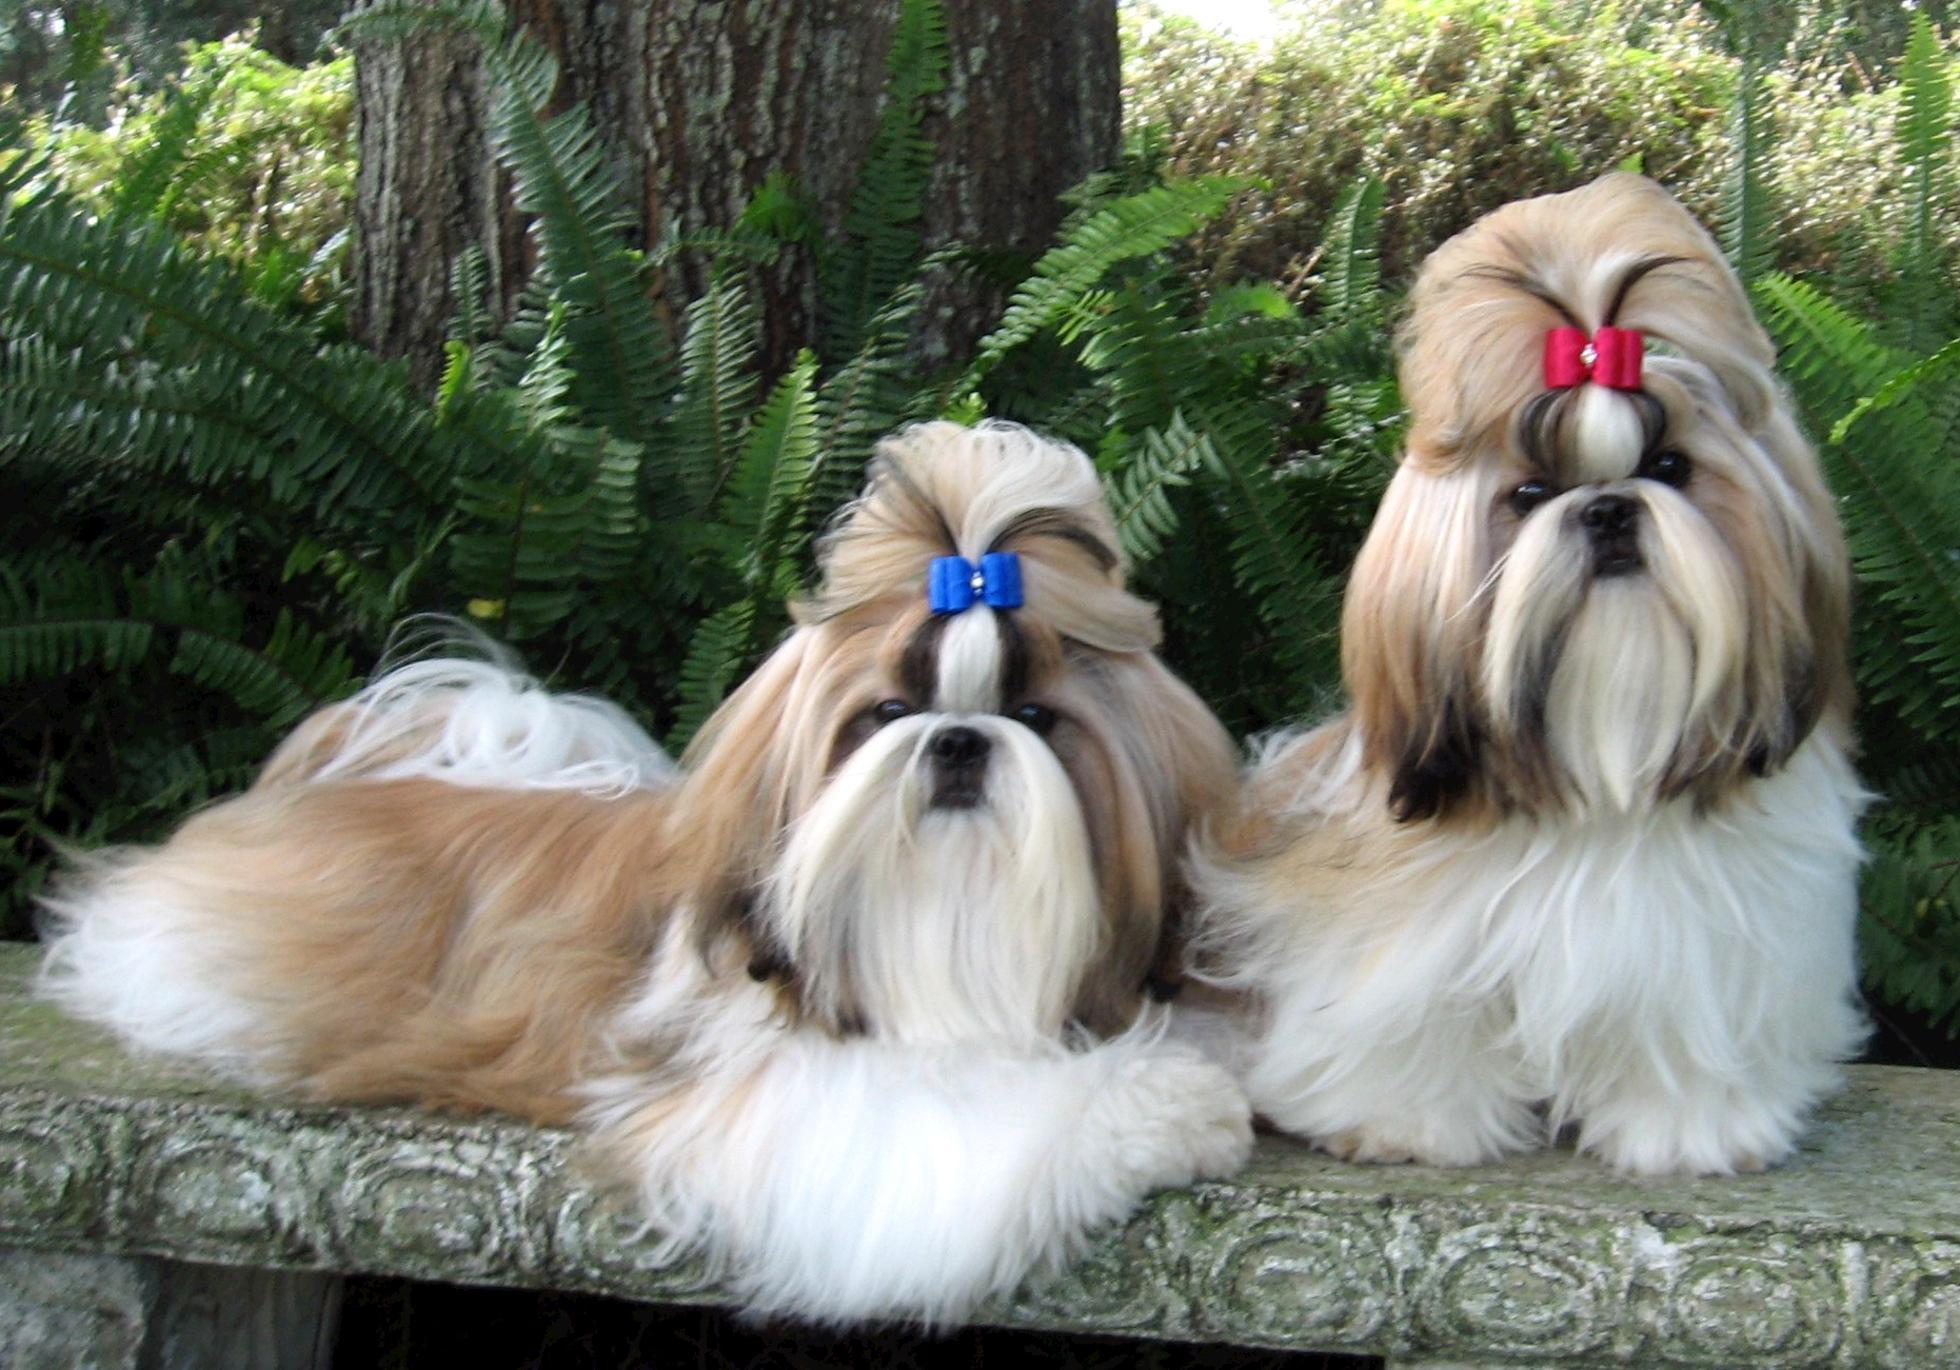 Shih Tzu - Shih Tzu Photo (13713143) - Fanpop